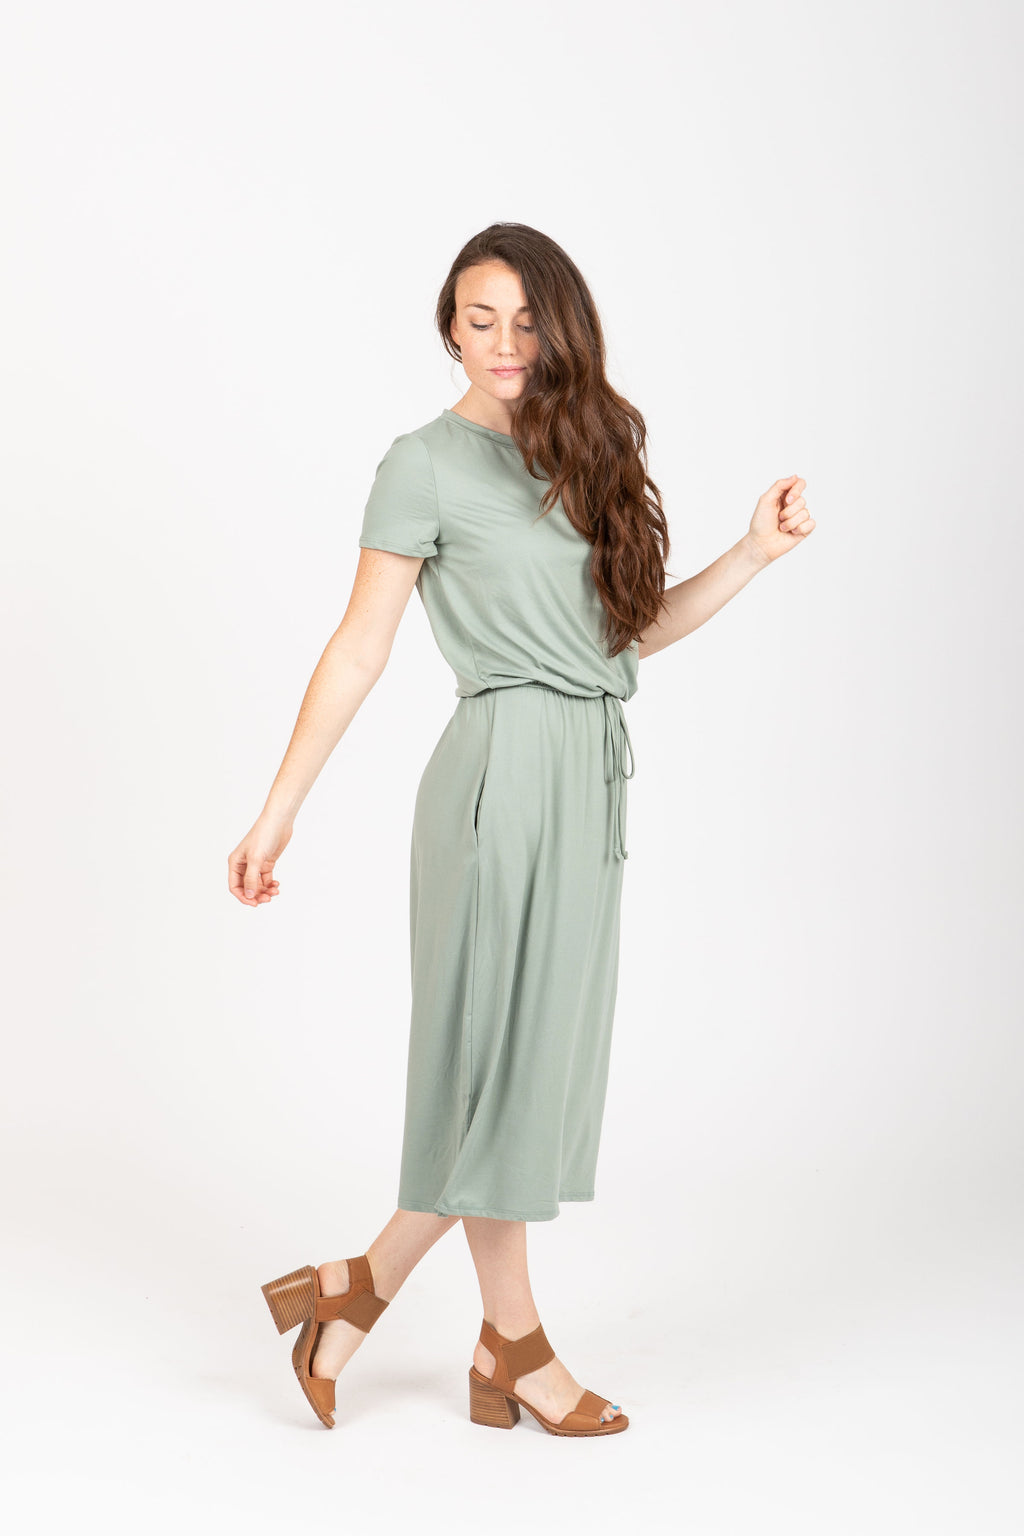 The Willow Casual Empire Dress in Sage